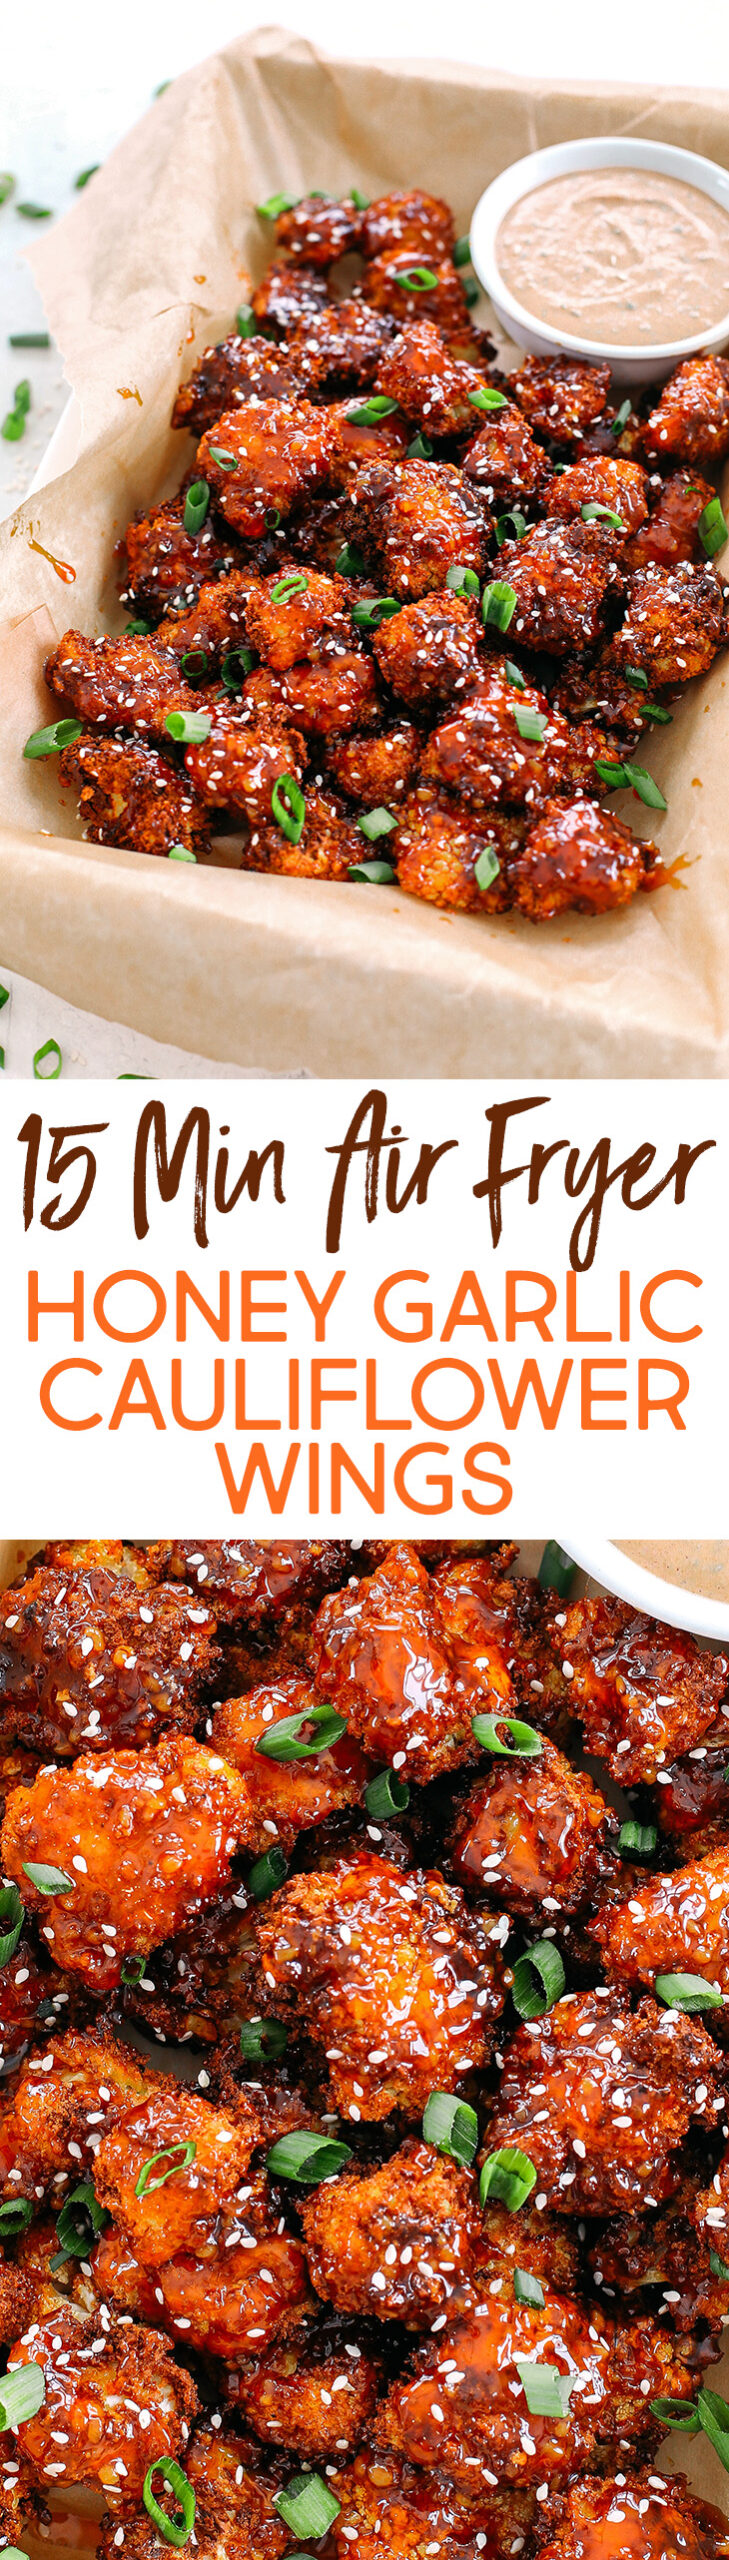 These Sticky Honey Garlic Cauliflower Wings are sweet, spicy and perfect for game day!  Easily made in the air fryer and served with the most delicious spicy ranch dipping sauce!